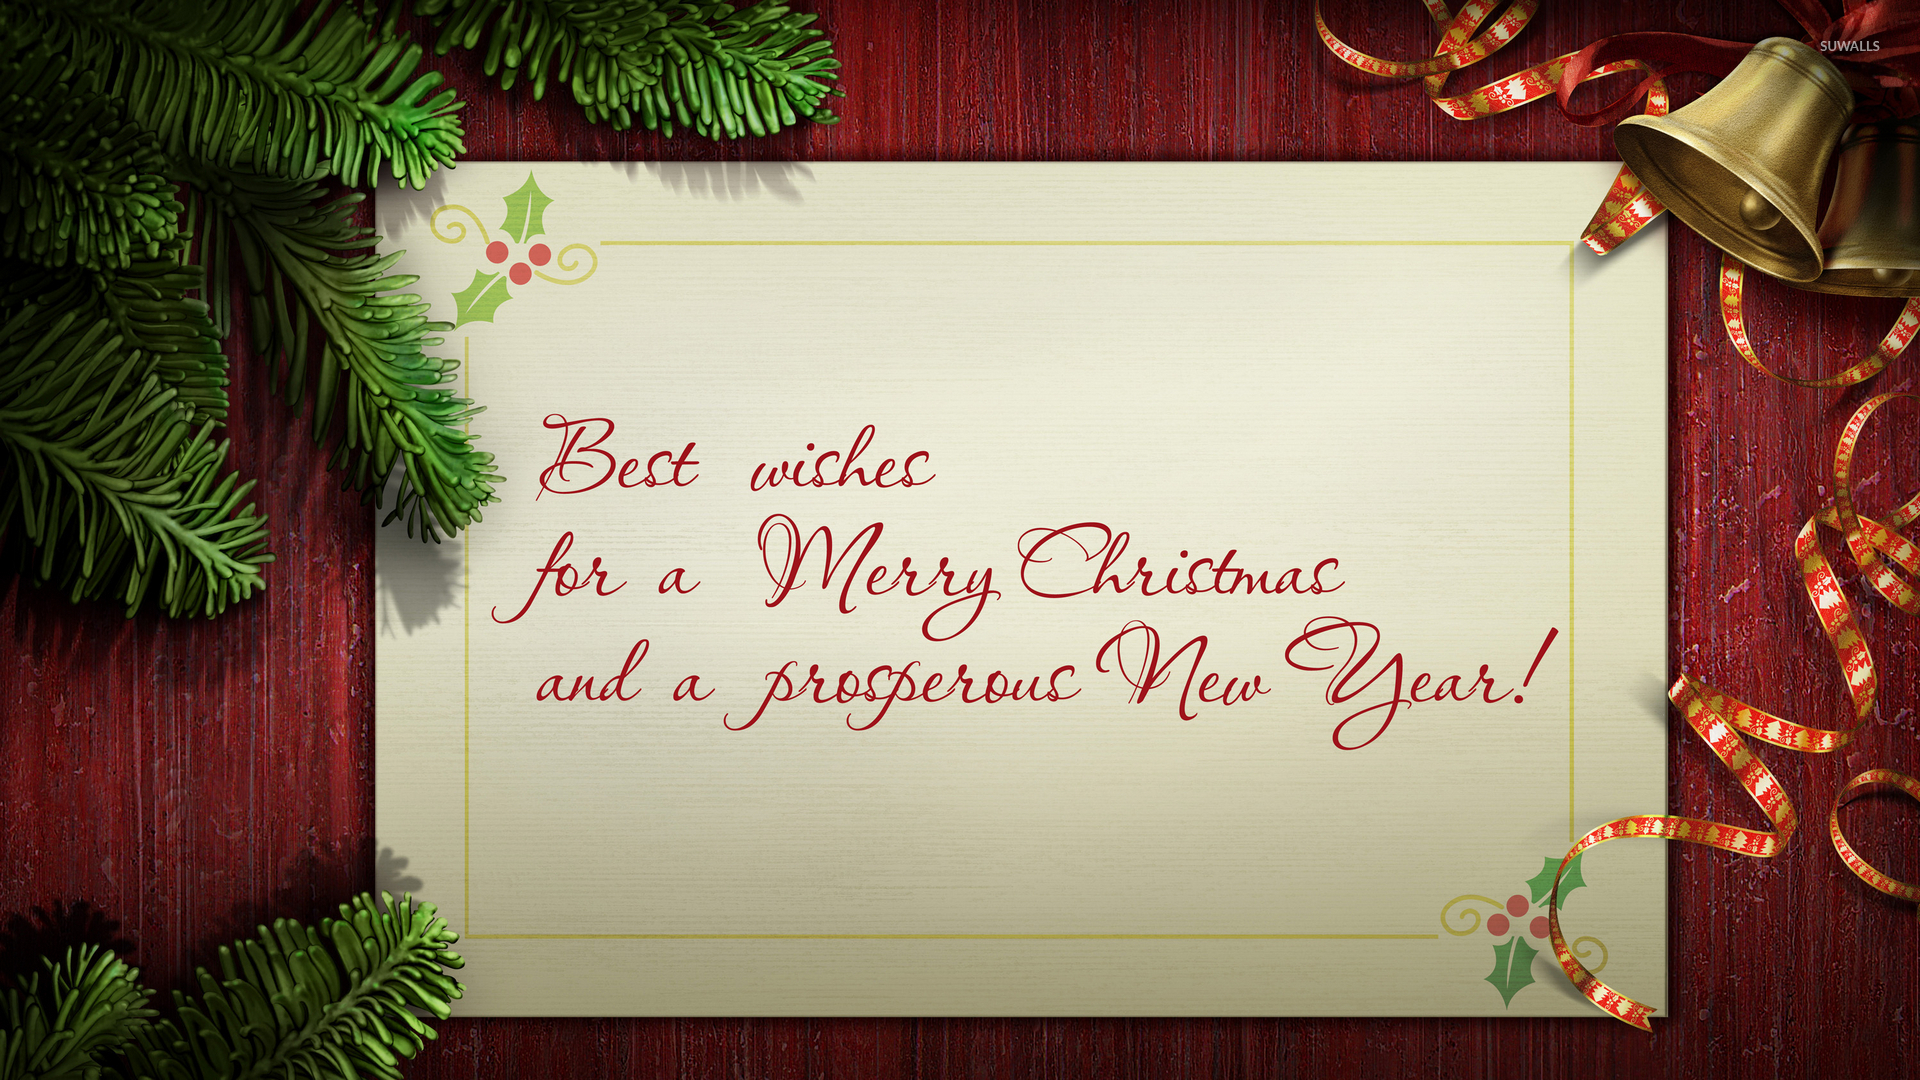 Best wishes on Christmas day and a Happy New Year wallpaper